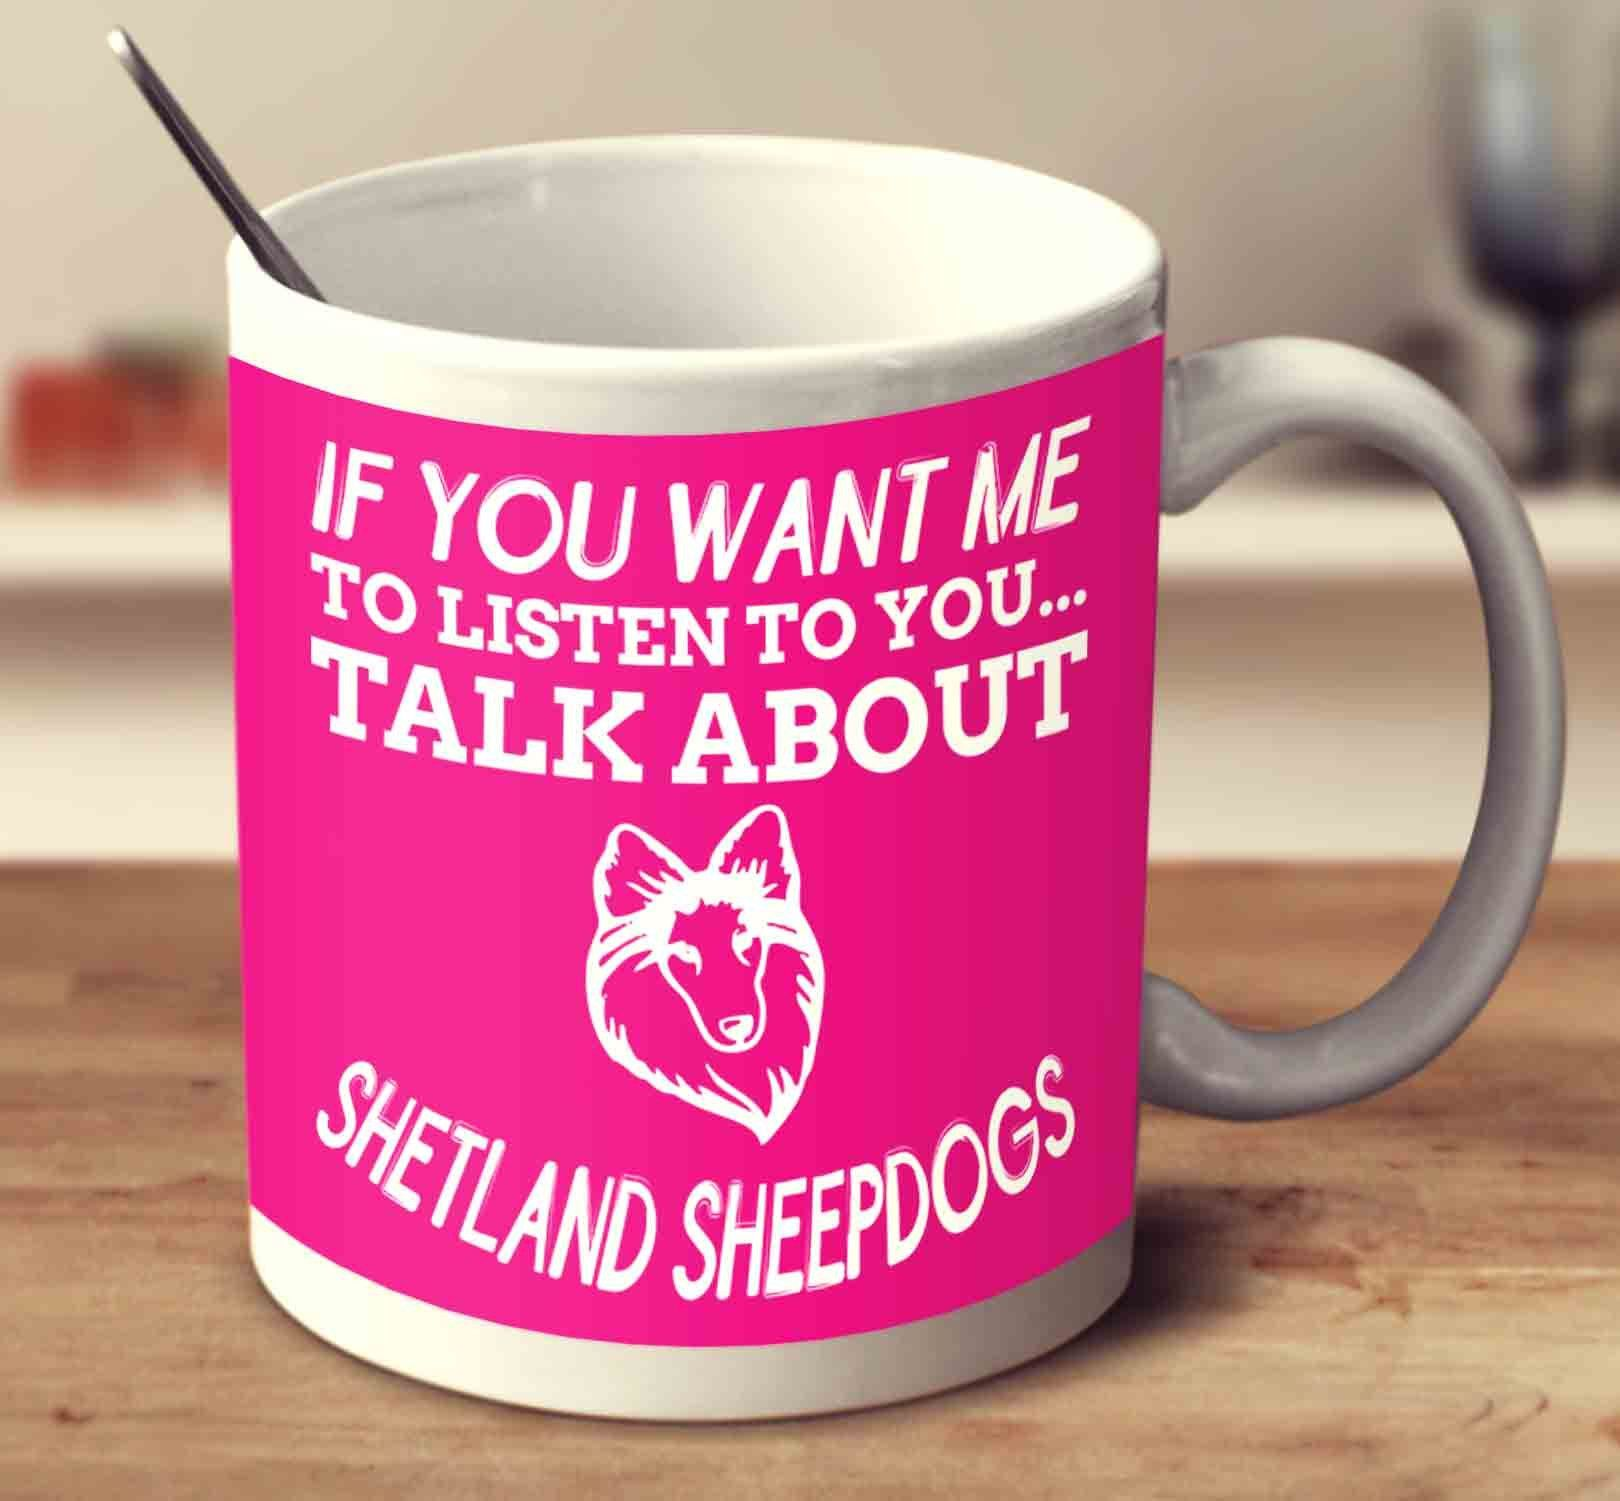 If You Want Me To Listen To You Talk About Shetland Sheepdogs